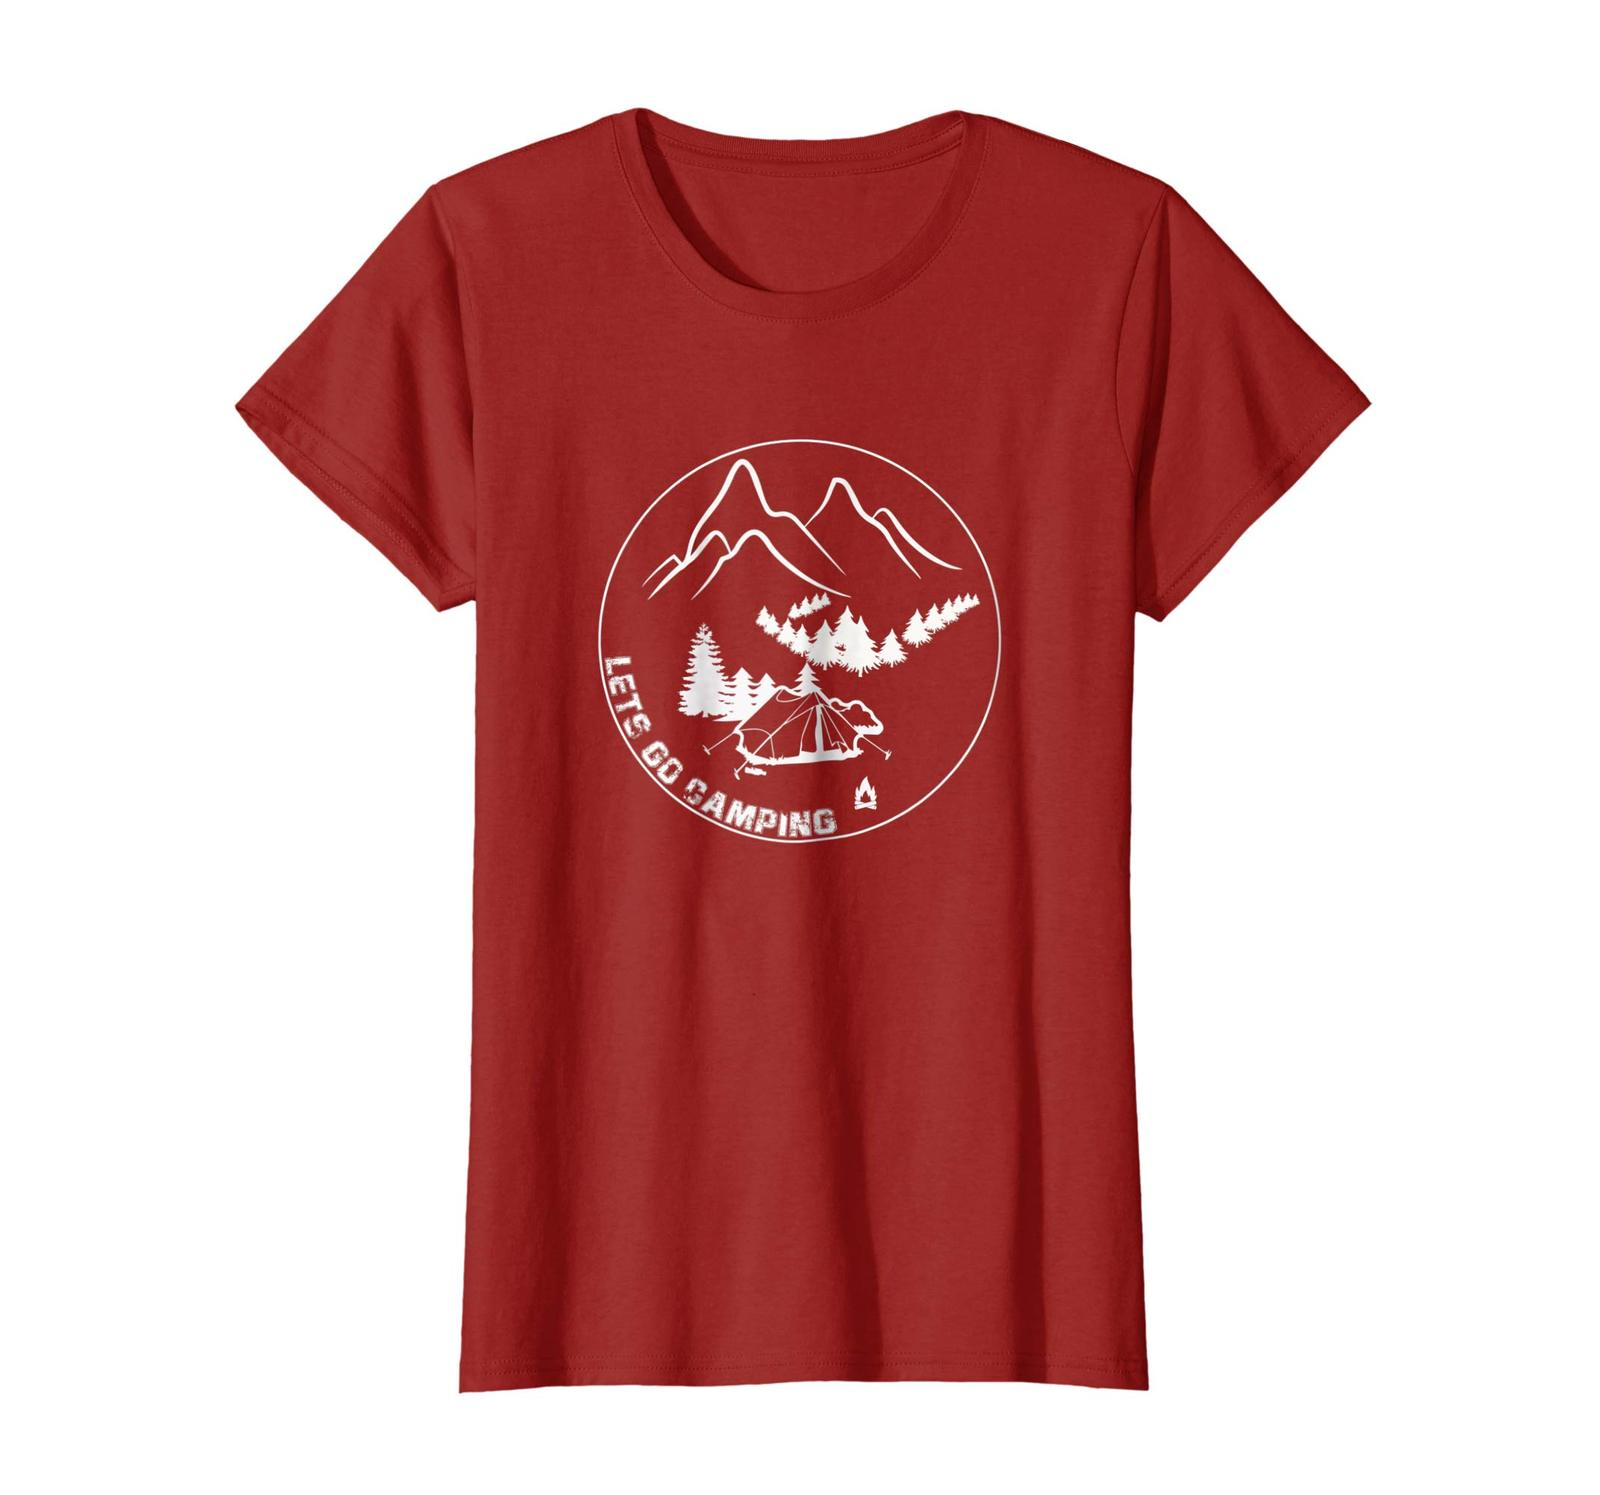 Brother Shirts - Lets Go Camping T shirt - Funny Camping t shirt Wowen